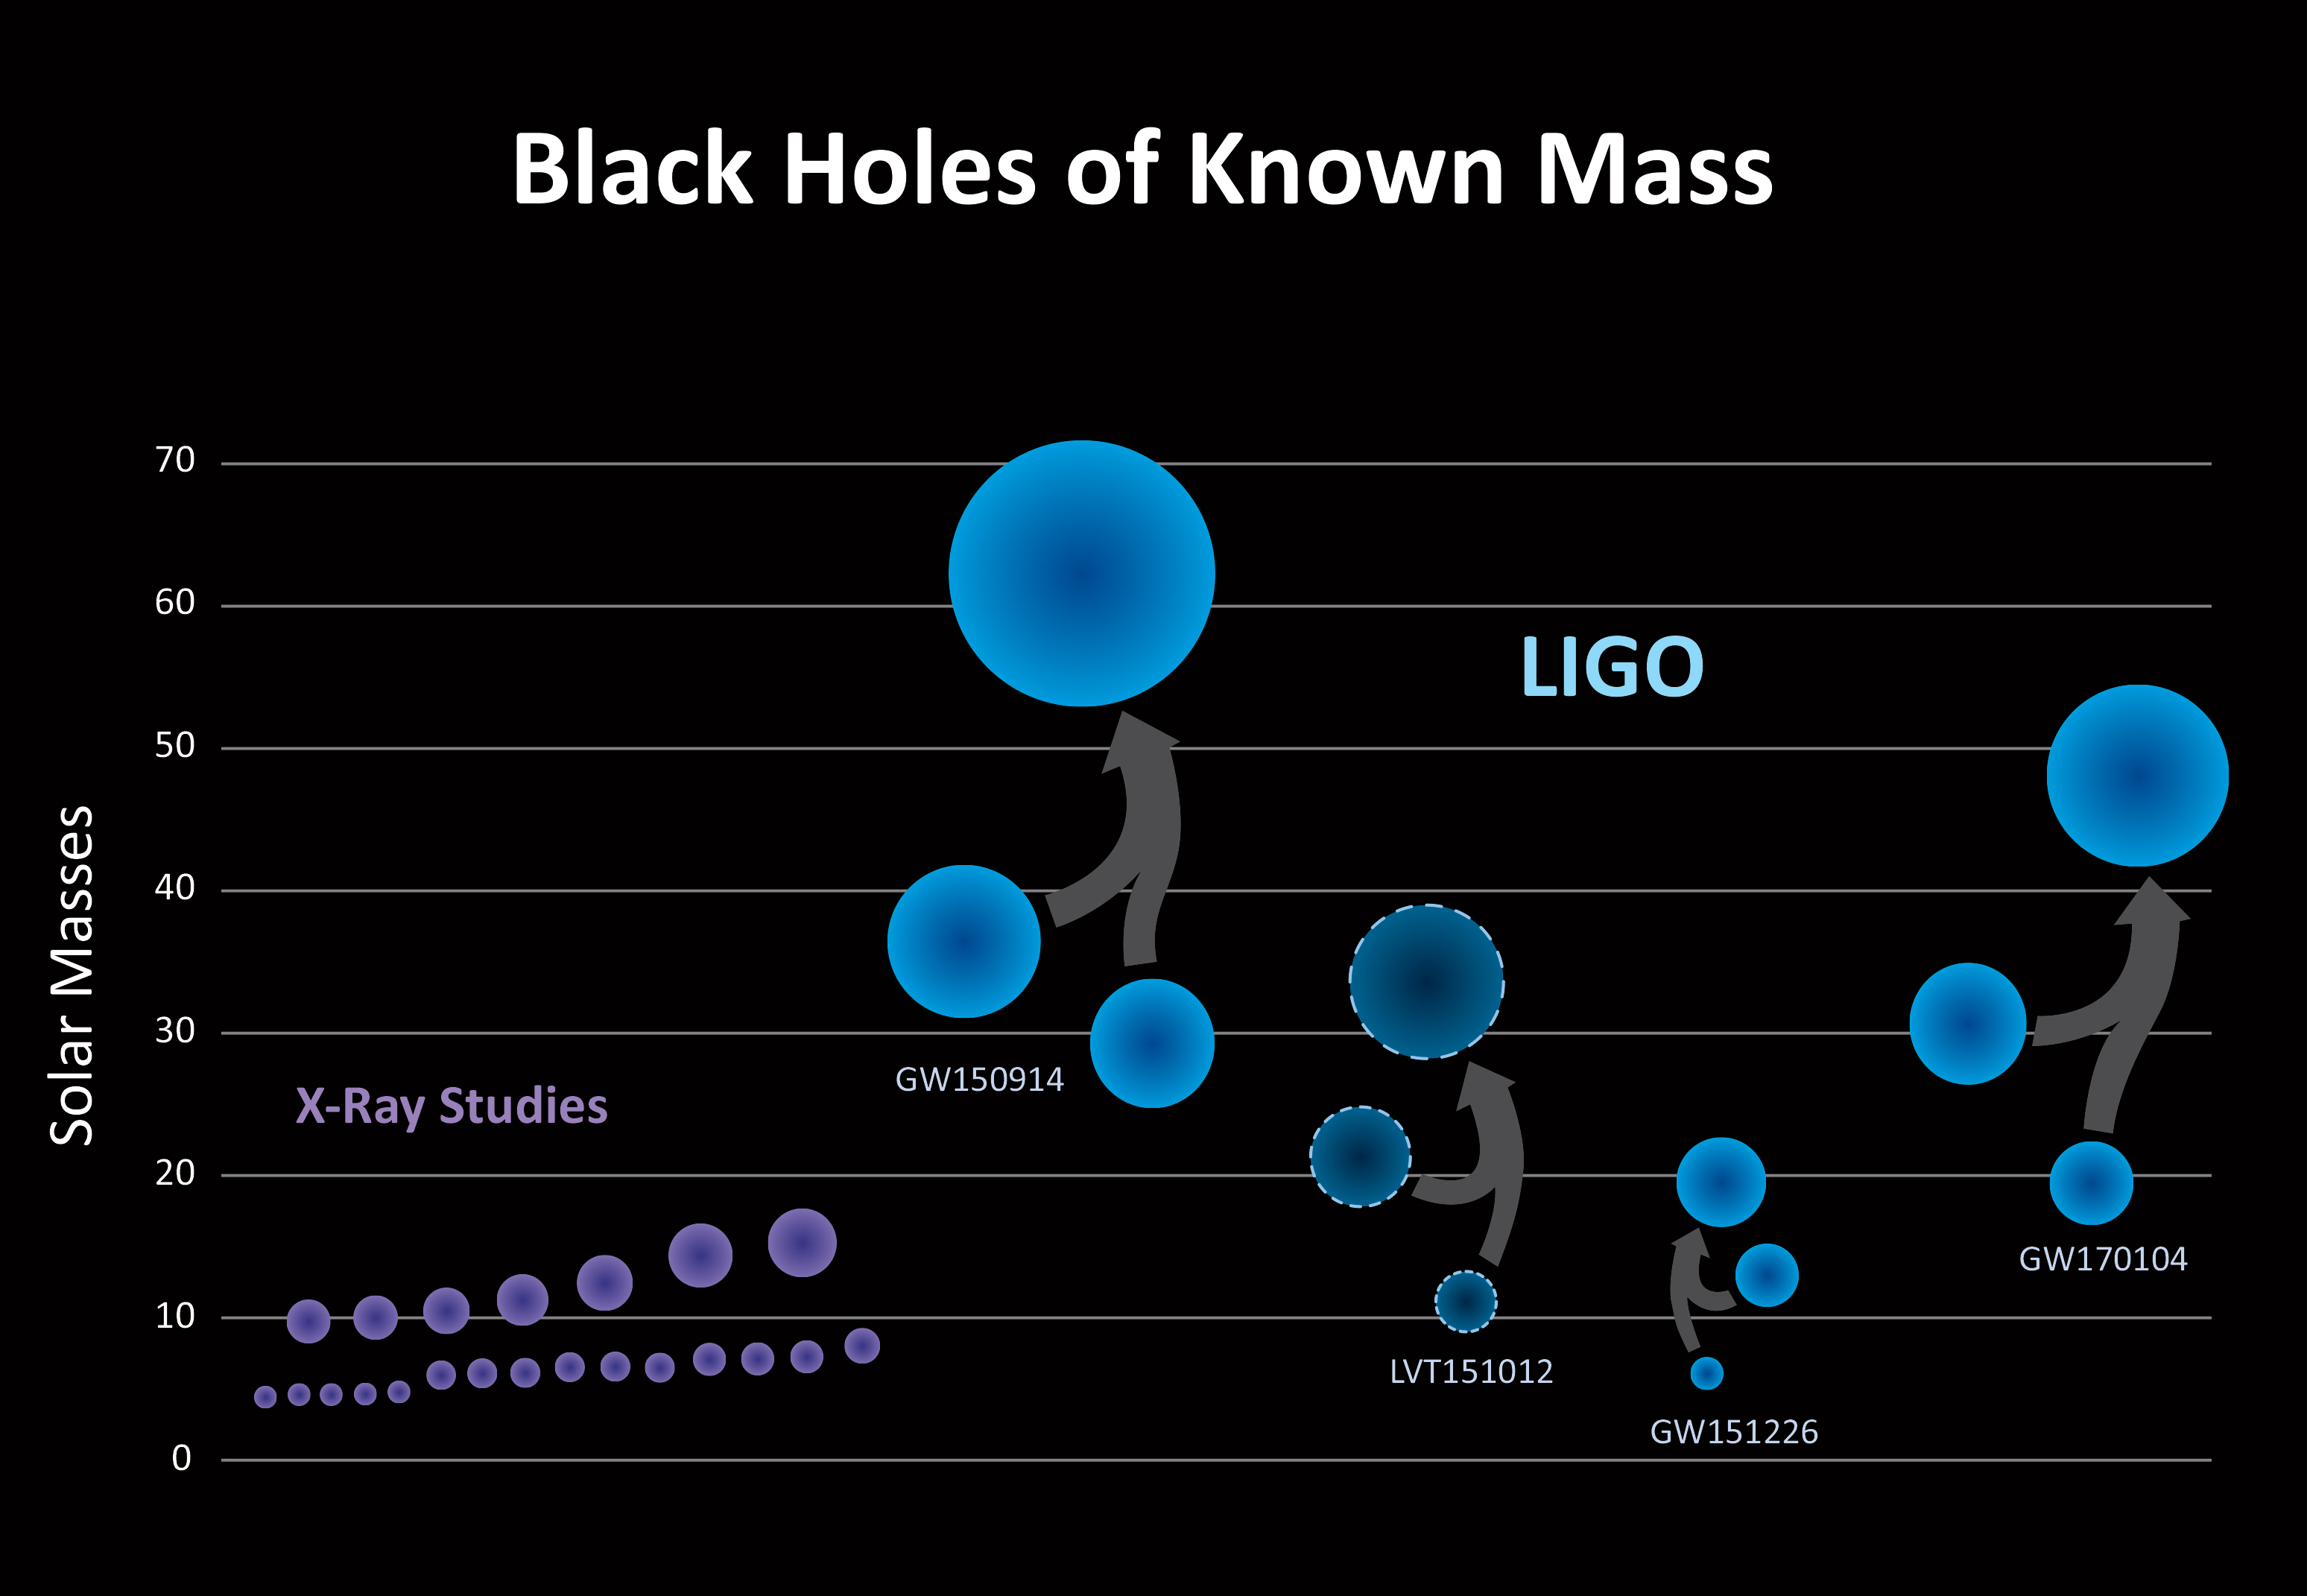 LIGO has discovered a new population of black holes with masses that are larger than what had been seen before with X-ray studies alone (purple)